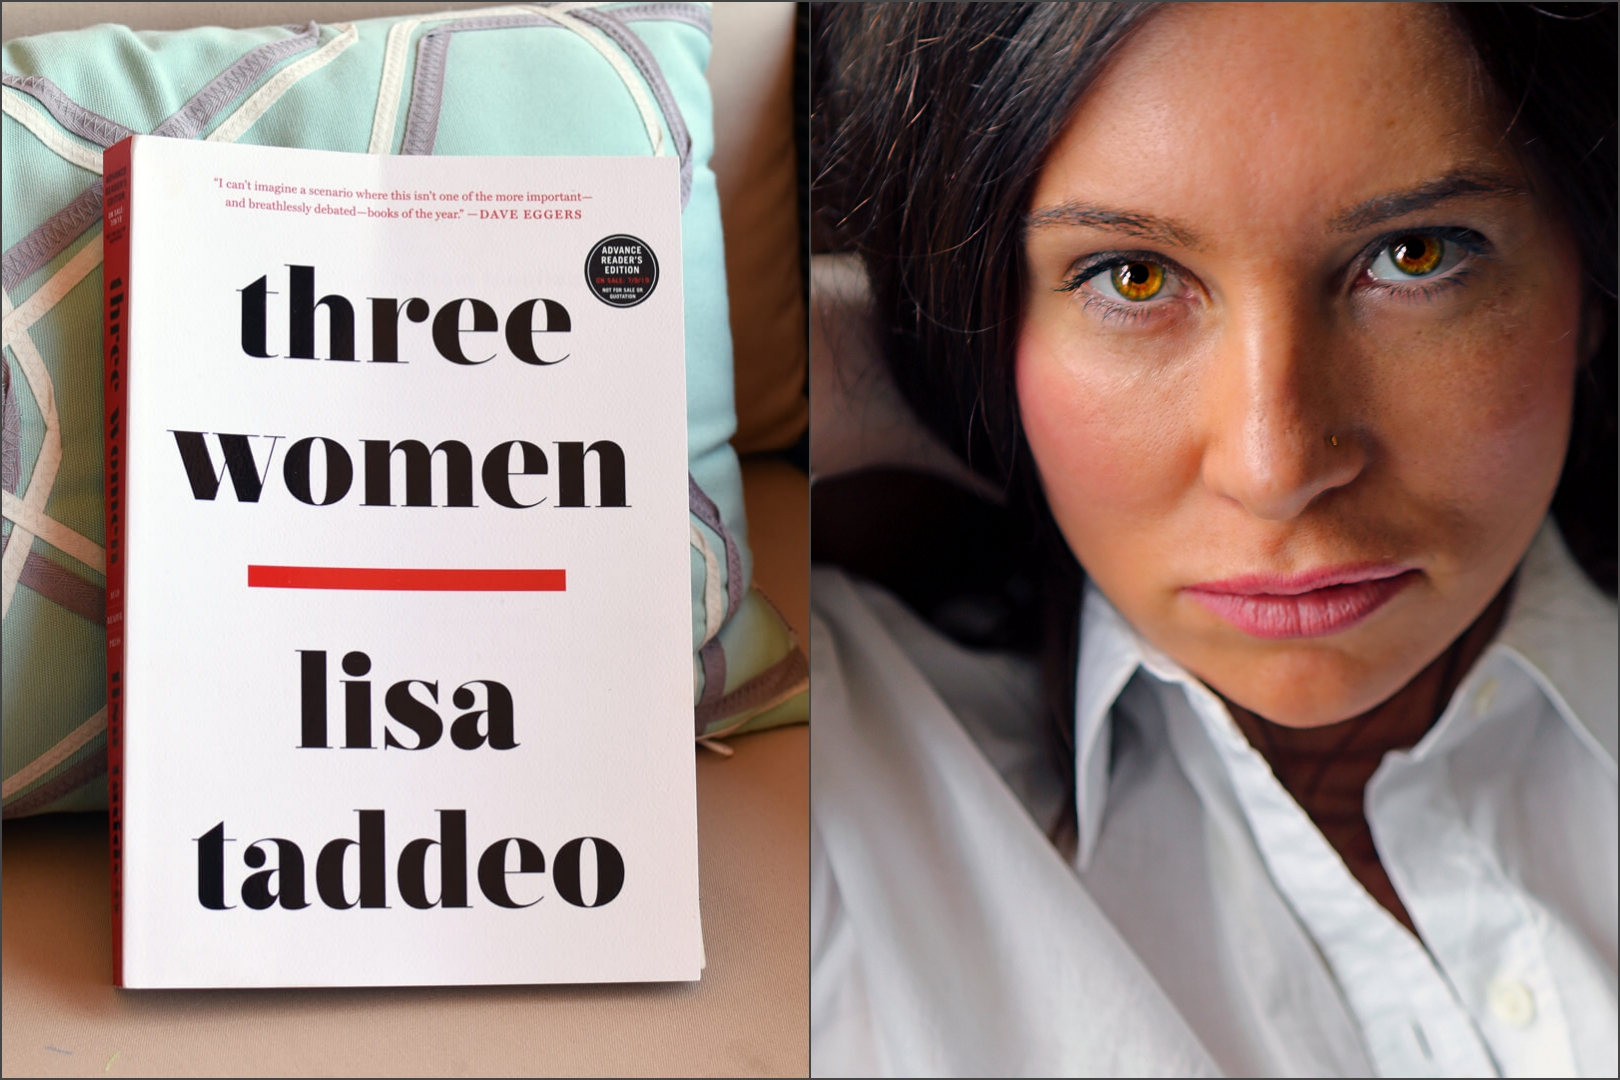 Three Women Author Lisa Taddeo